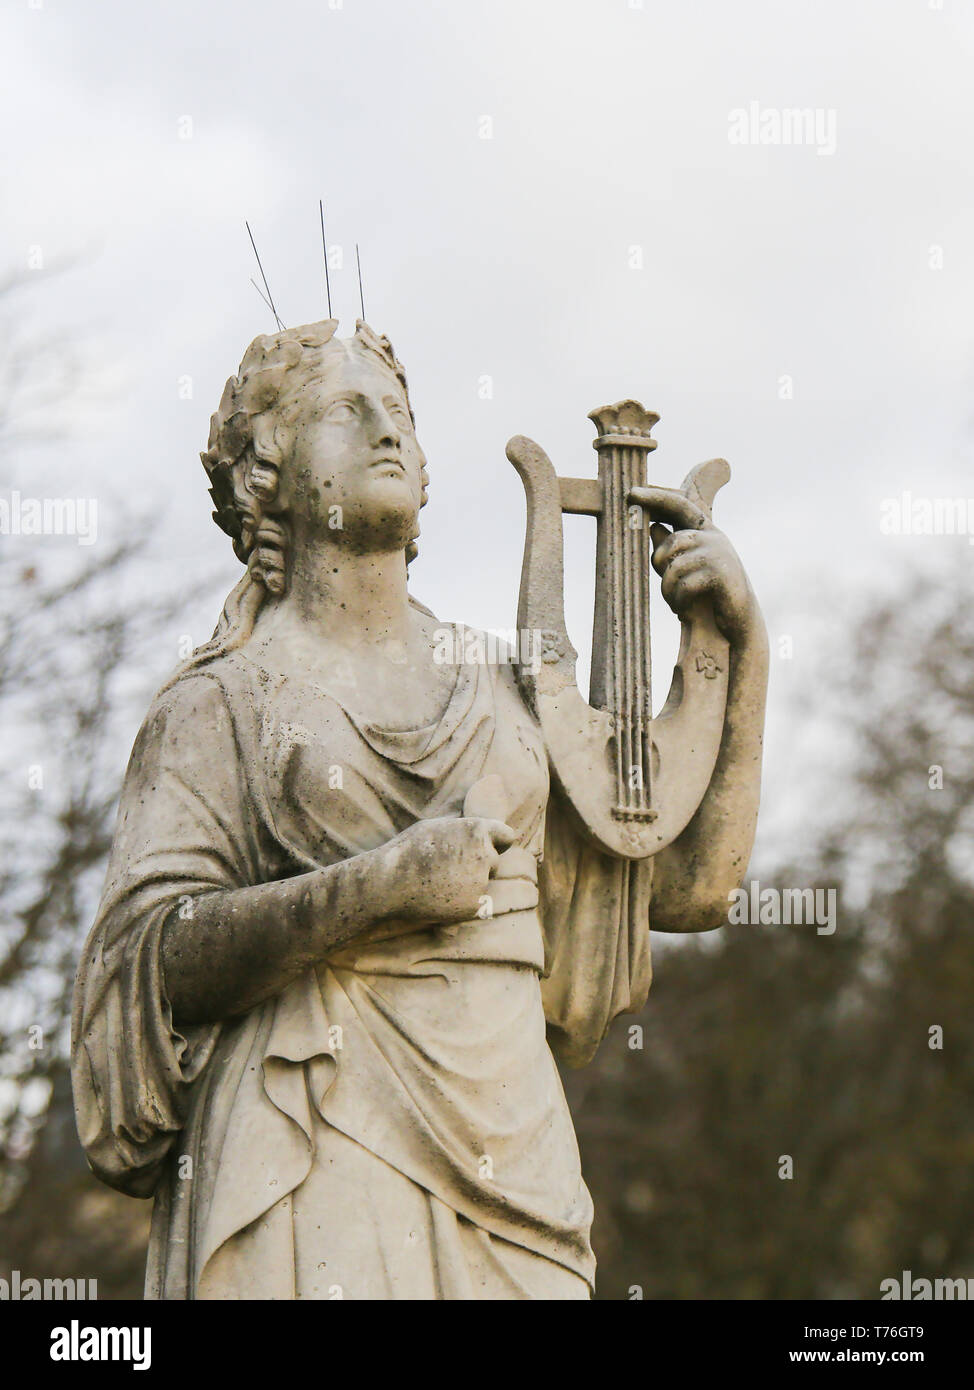 Statue of Calliope, in Greek Mythology the muse who presides over eloquence and epic poetry, holding a lyre in the Jardin de Luxembourg, Paris, France Stock Photo